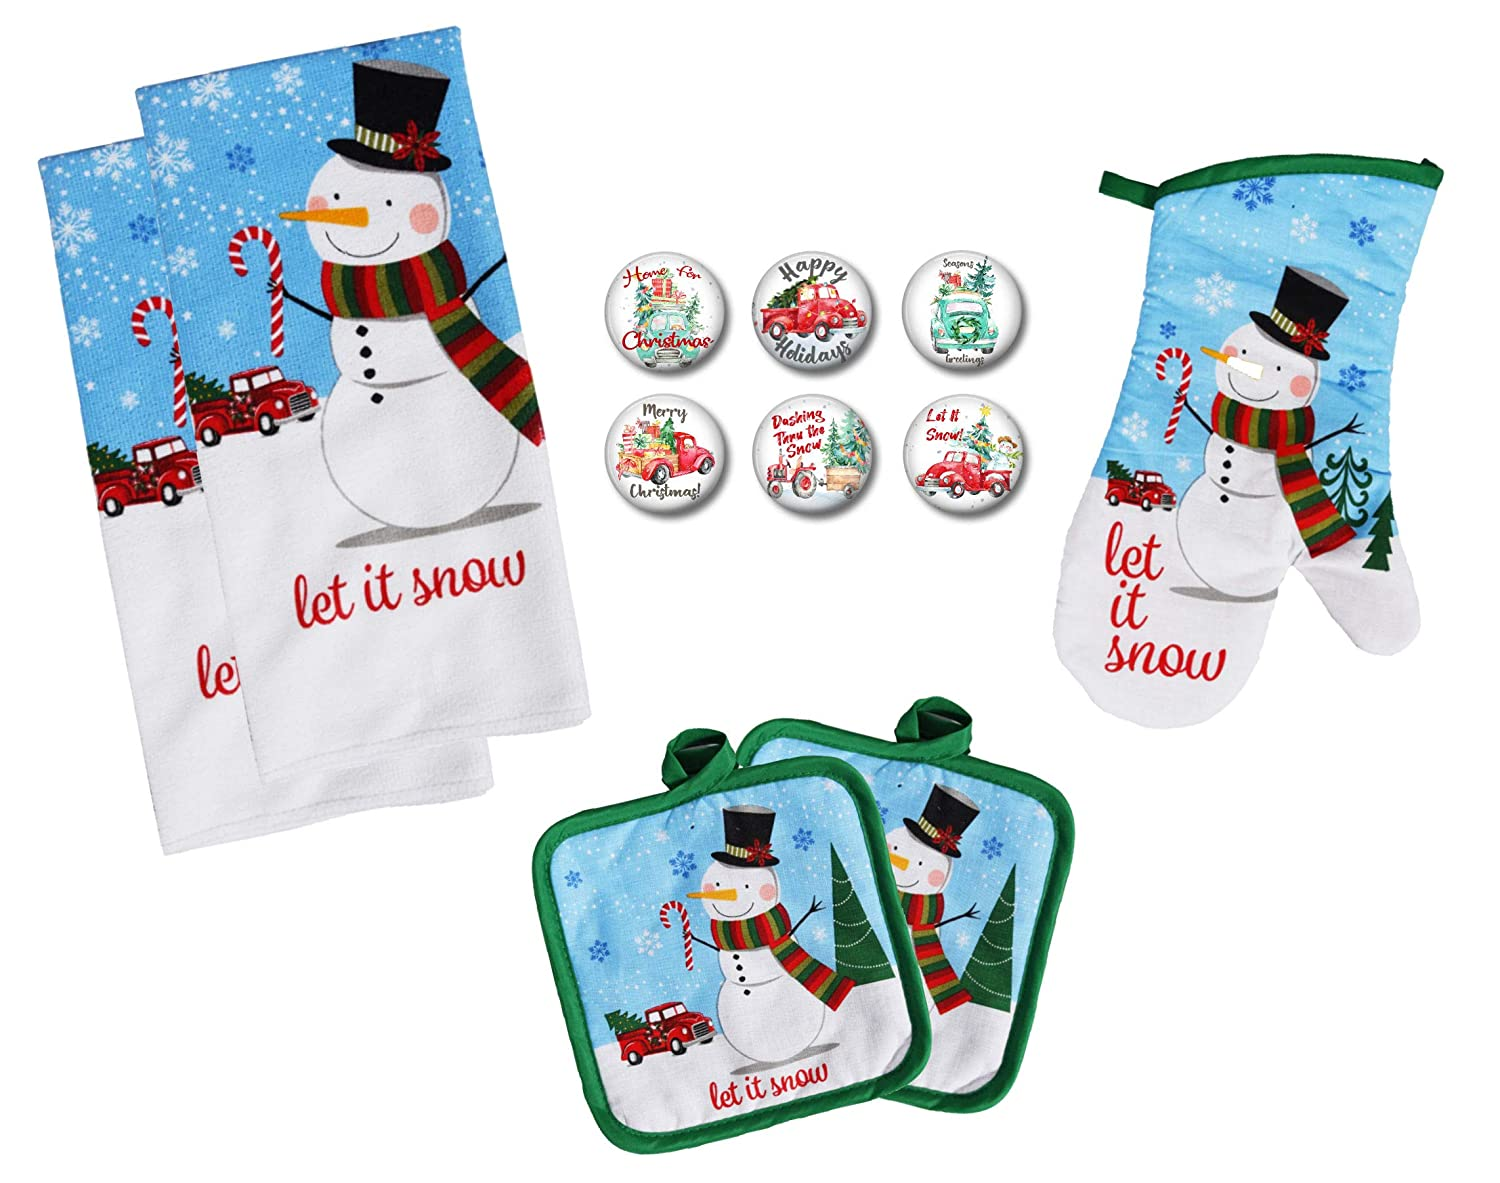 Farmhouse Daisy Designs Christmas Kitchen Decor Towel Set with Pot Holders Oven Mitt and Set of 6 Snowman and Old Red Christmas Truck Decor Refrigerator Magnets Set - (Snowman and Old Red Truck)